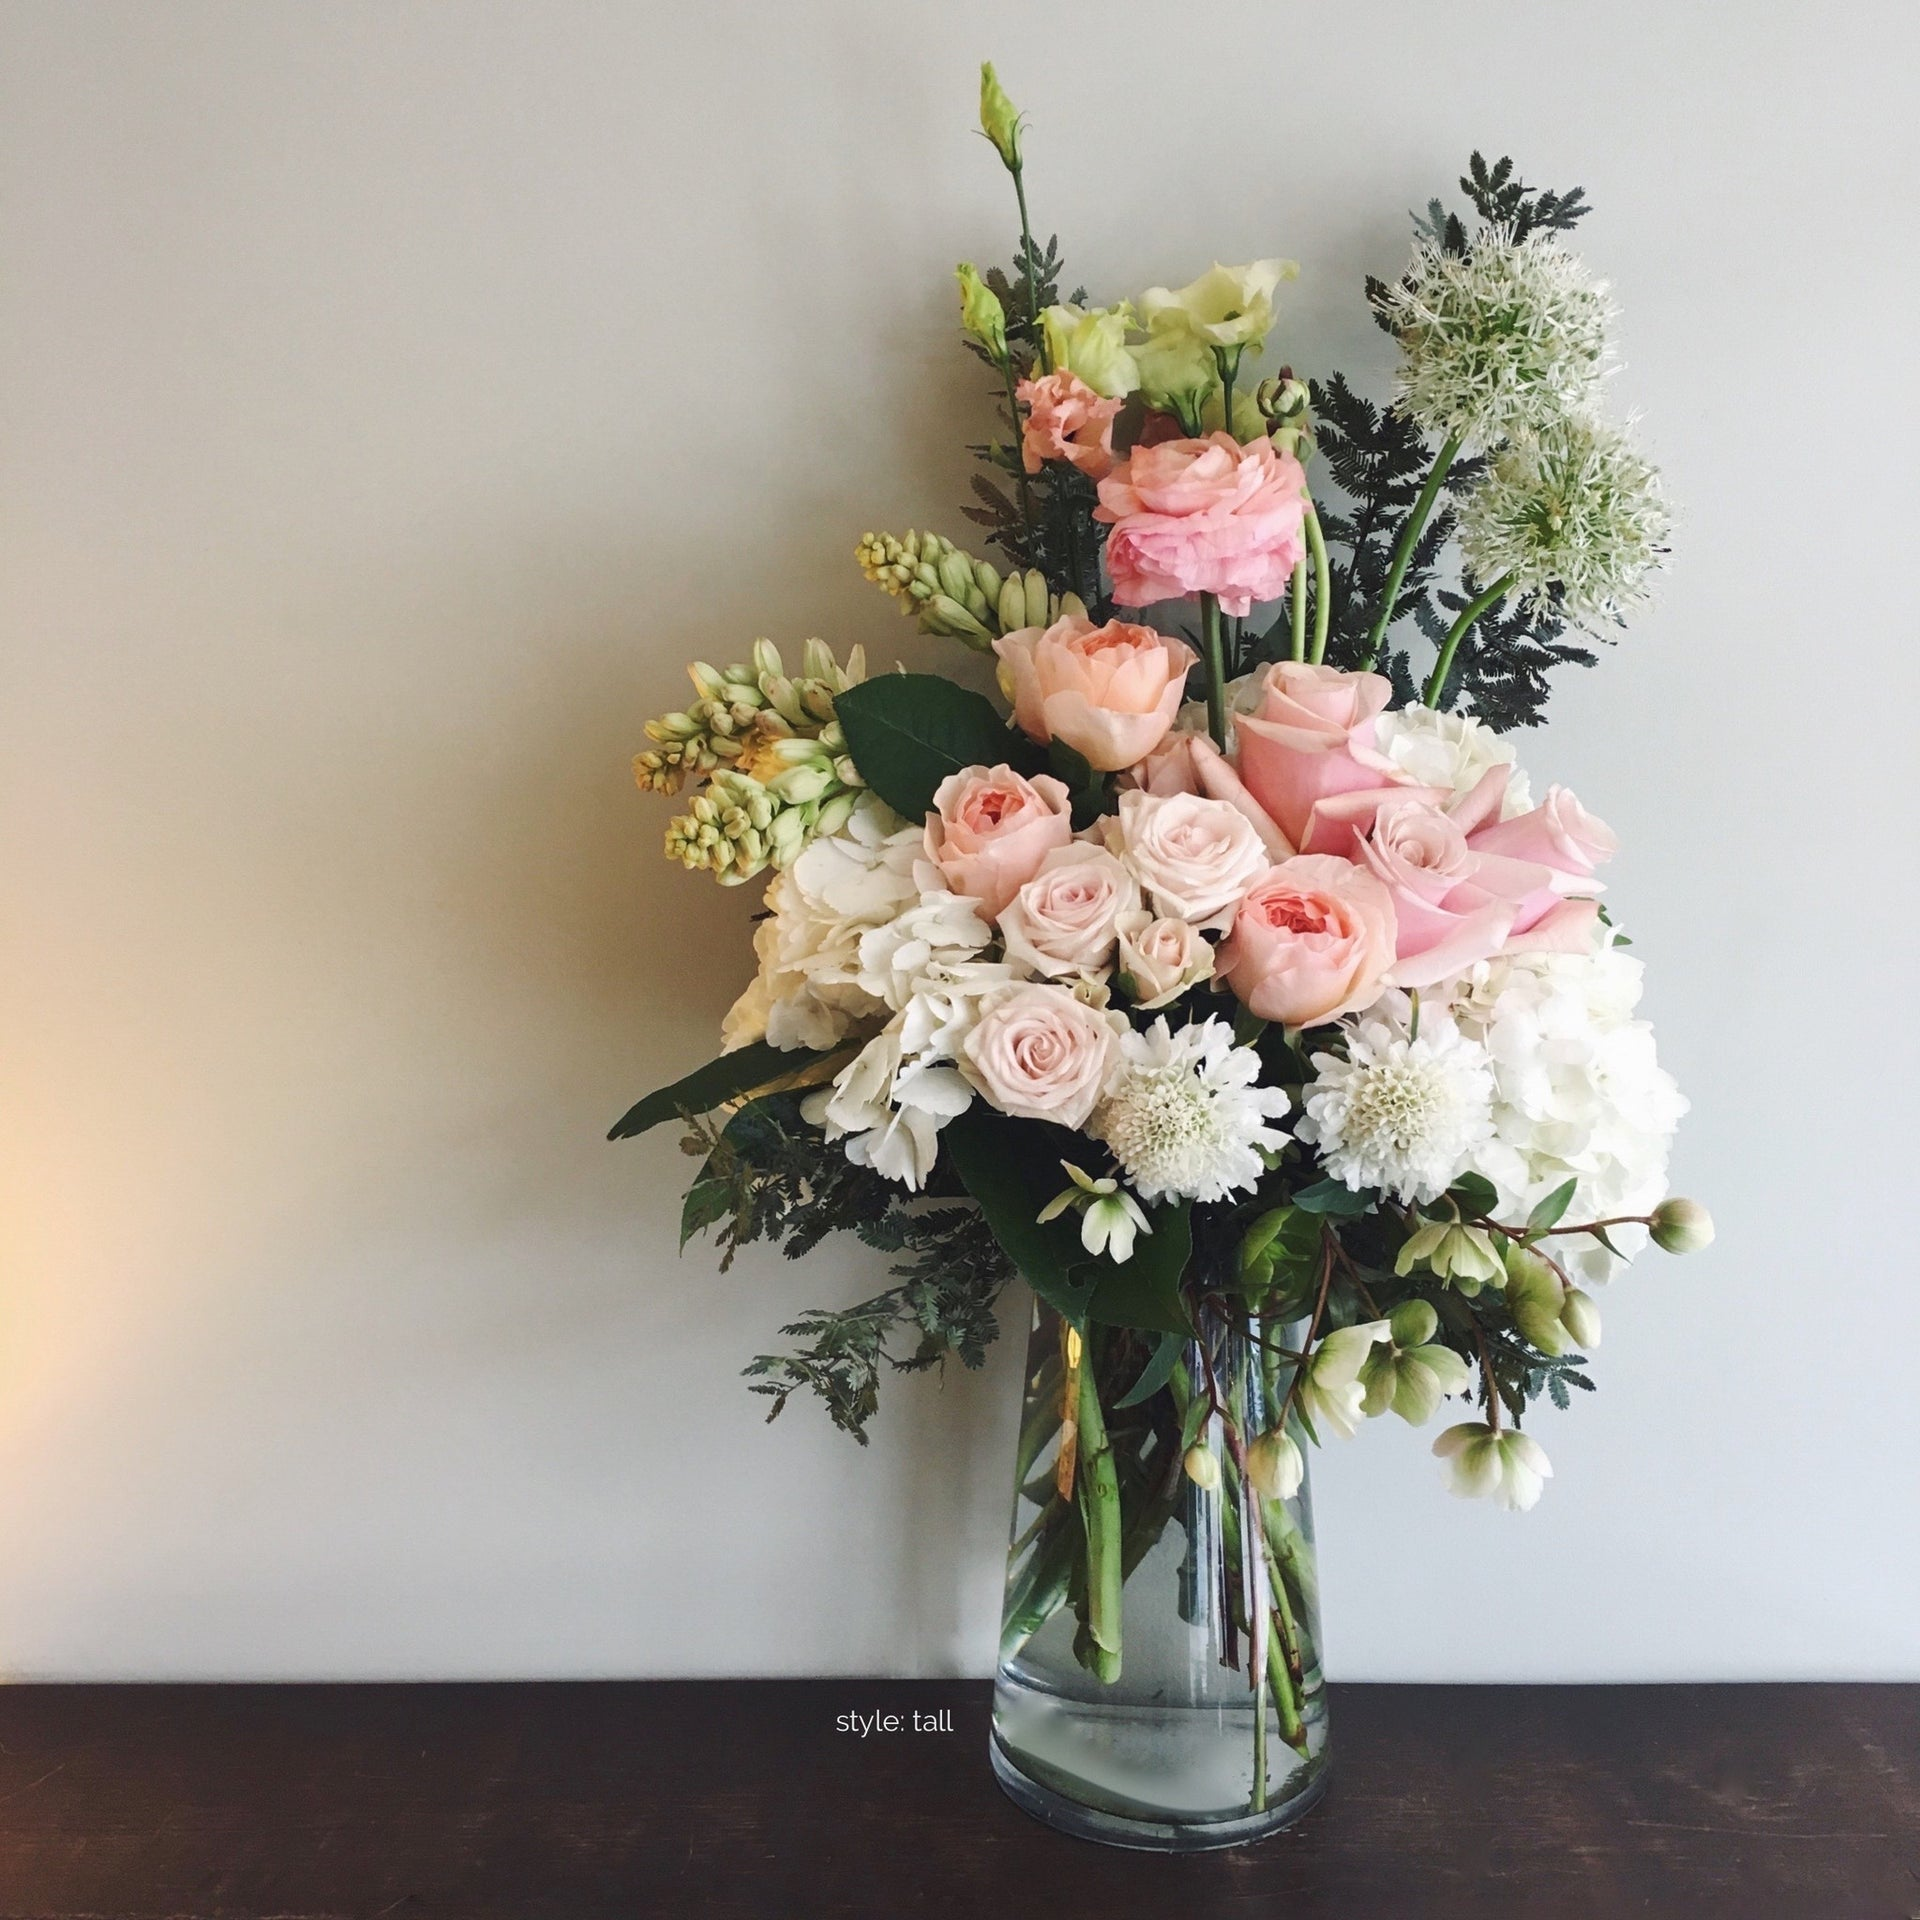 Tall soft and subdued arrangement in white, light pink and green using roses, hydrangea, and allium.